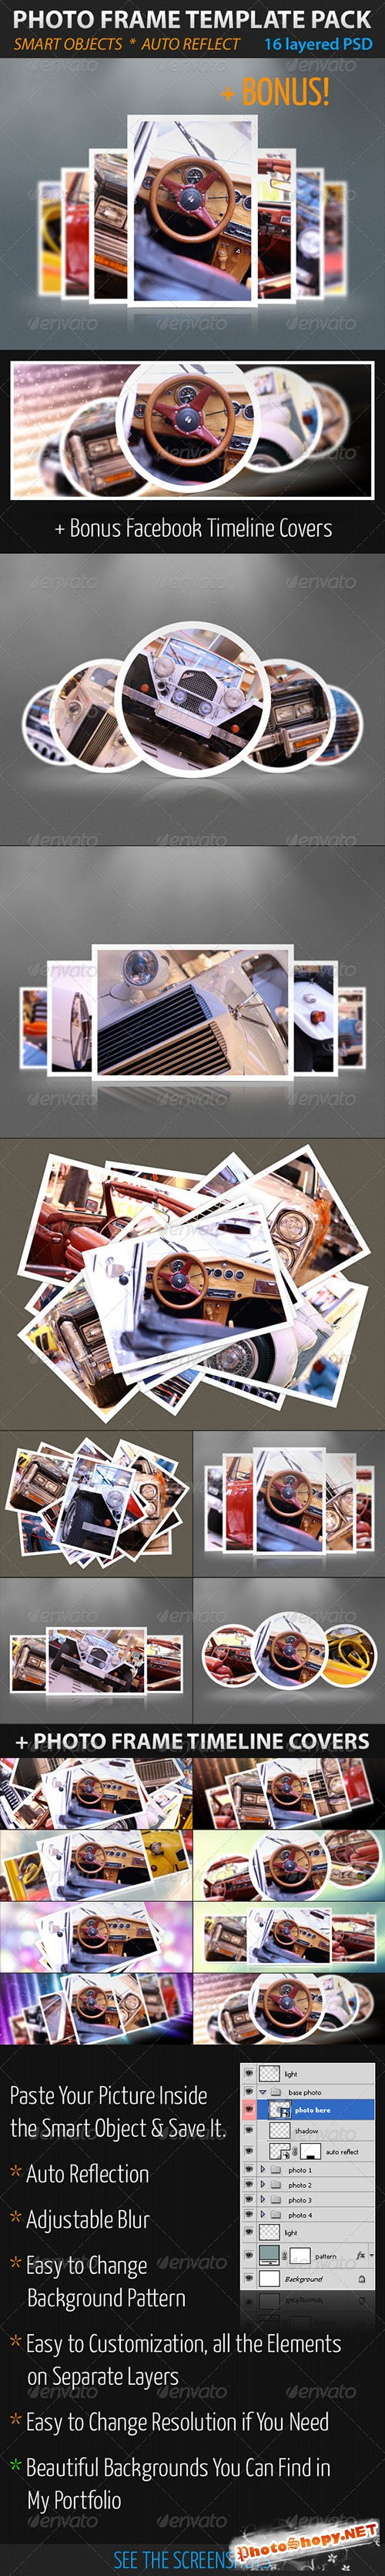 GraphicRiver - Photo Frame Template Pack 1596667